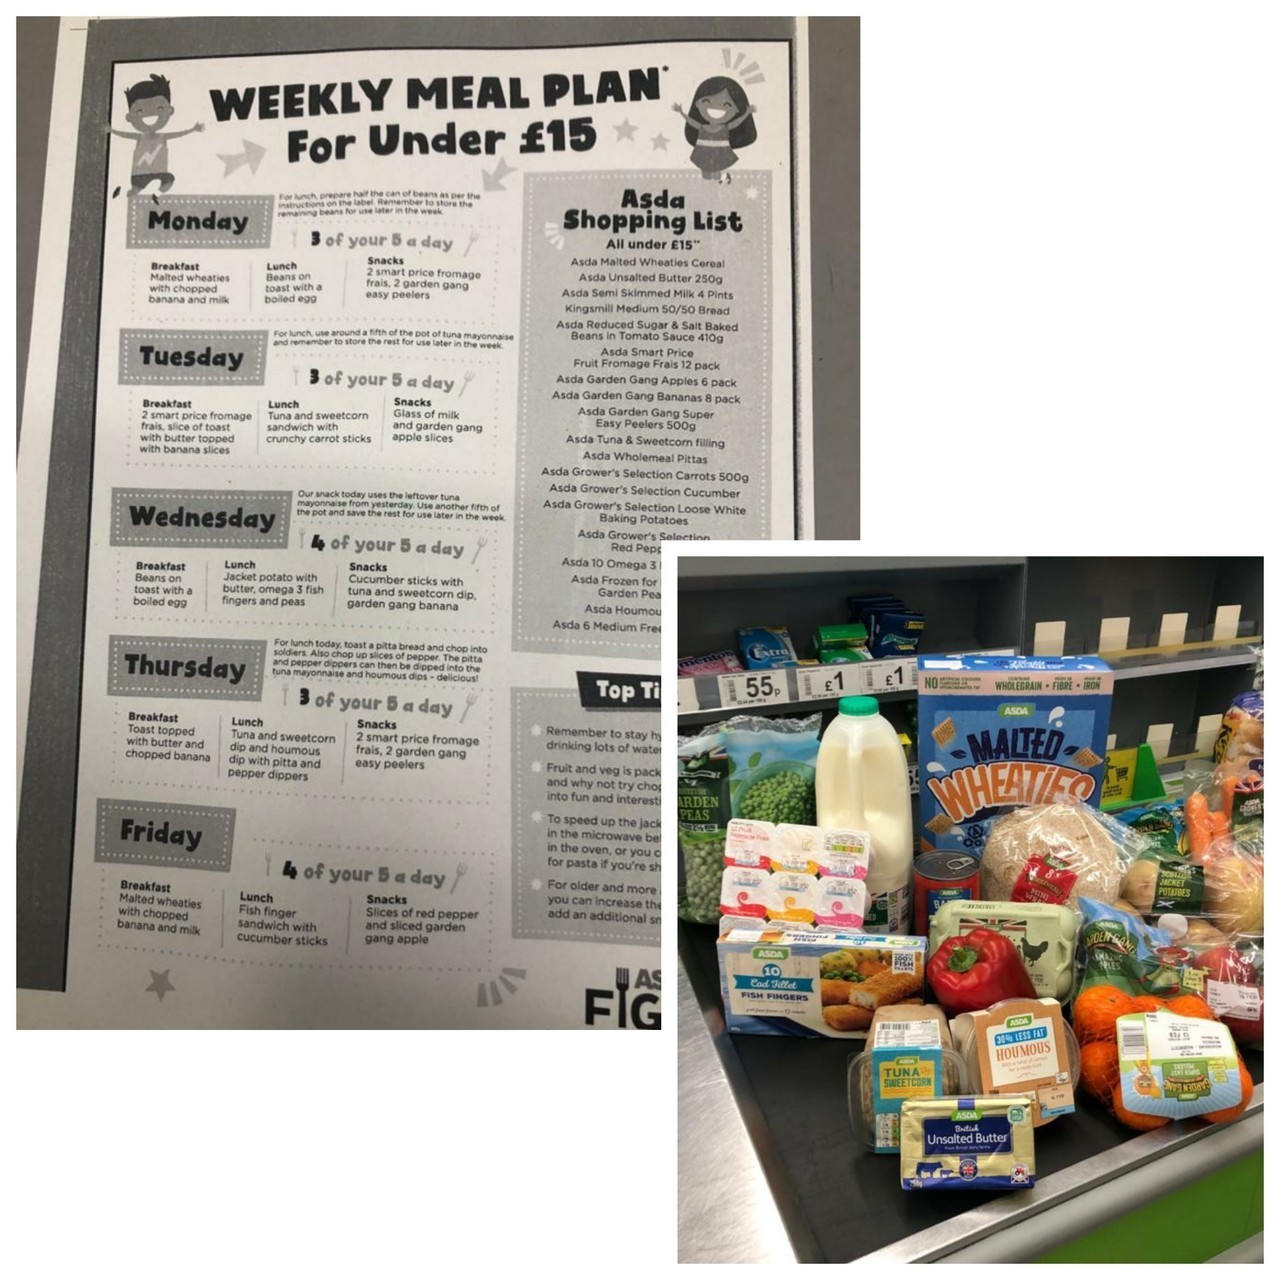 Weekly Meal Plan for under £15 | Asda Hartlepool